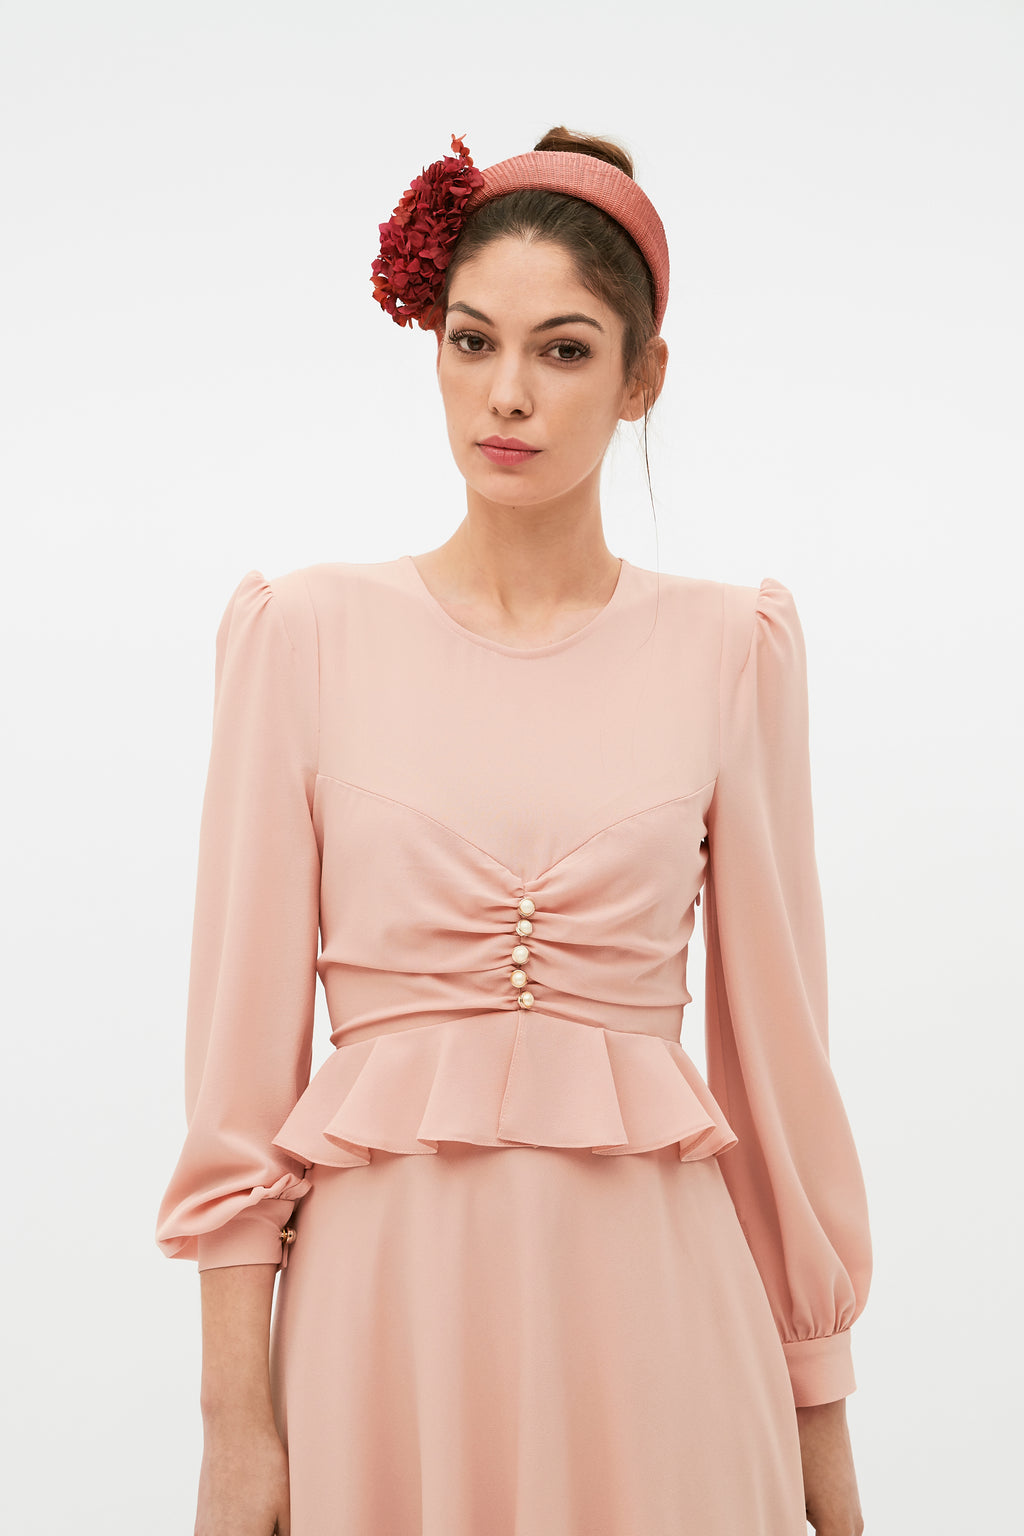 Scarlet Dress - Nude Pink